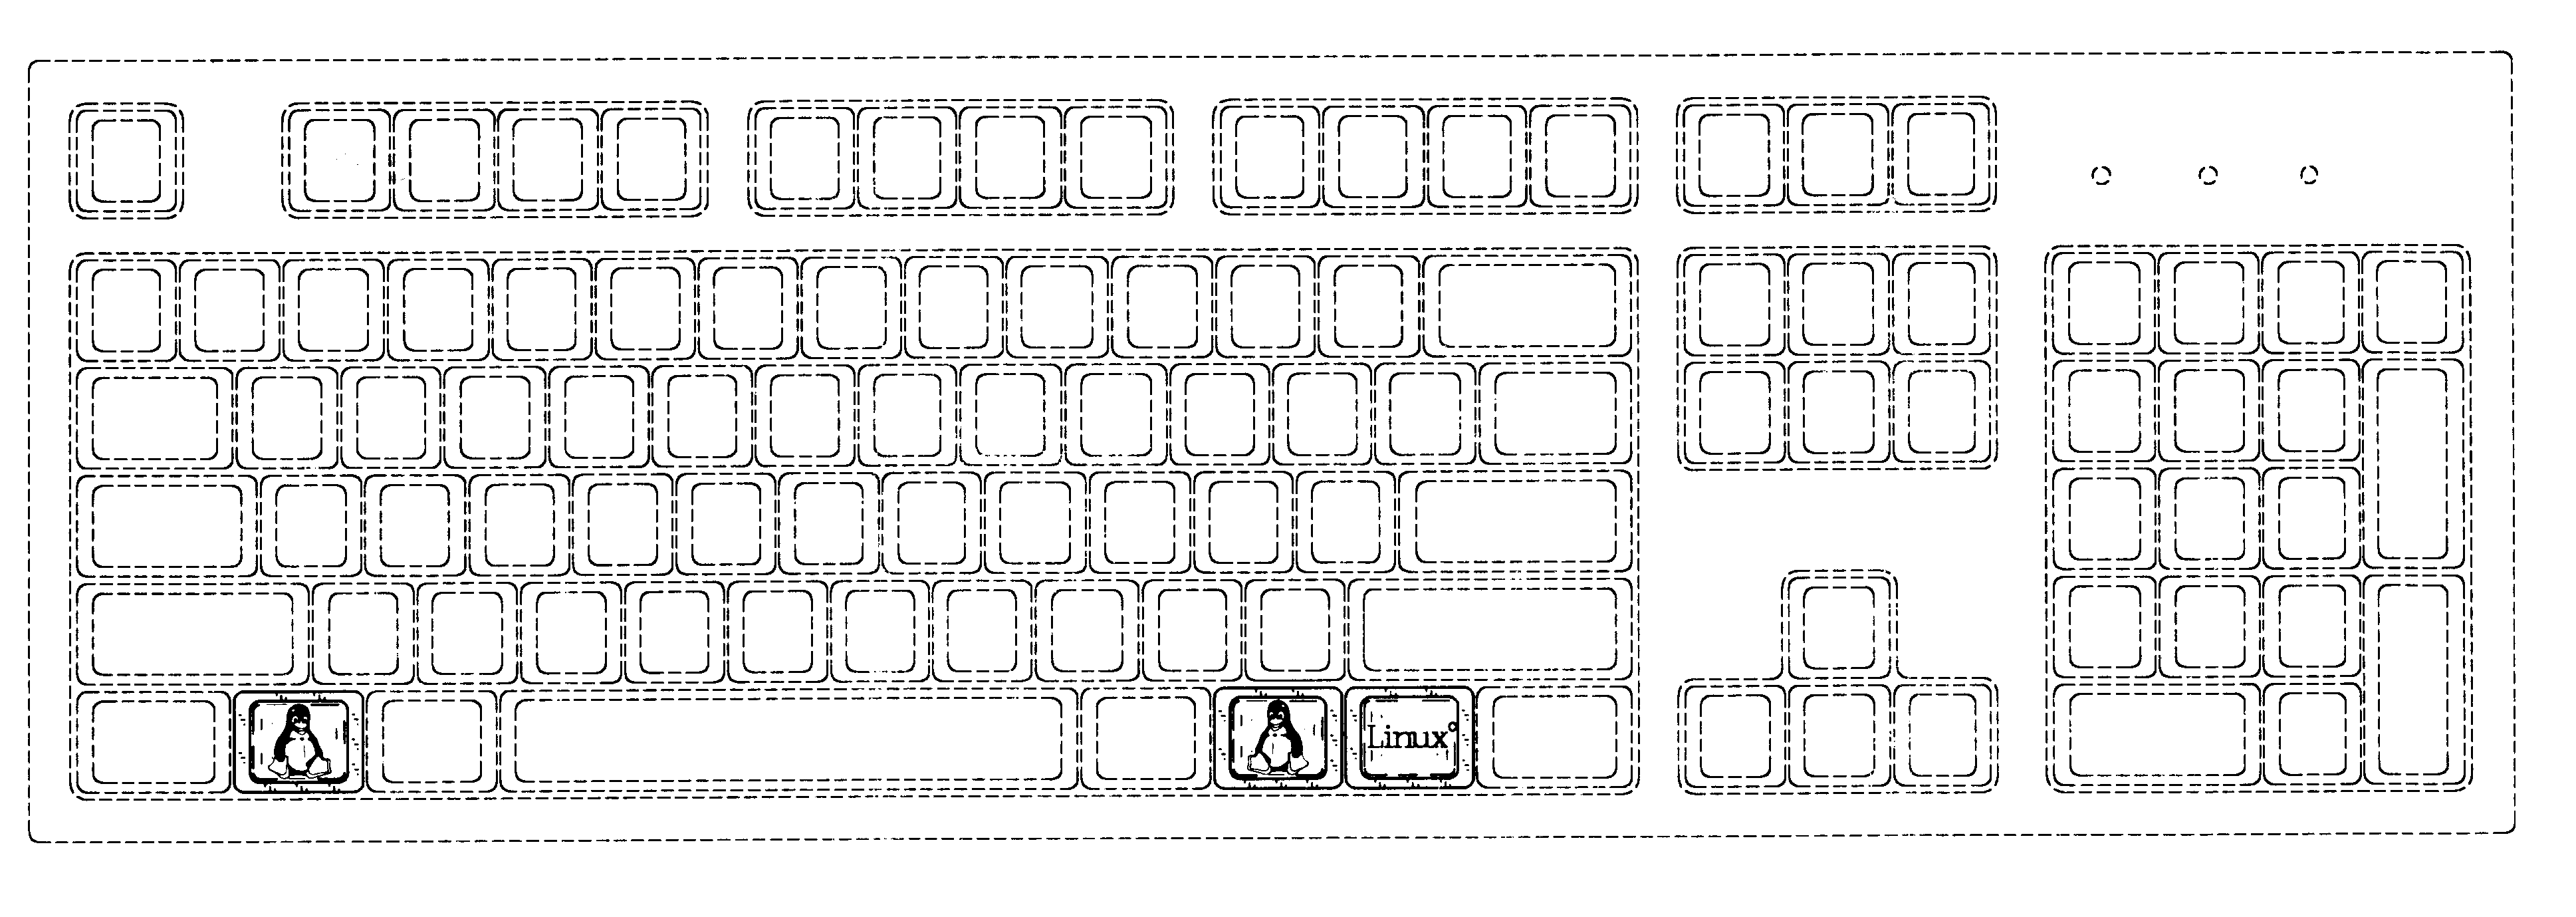 Line Drawing Keyboard : Patent usd set of keys for a computer keyboard